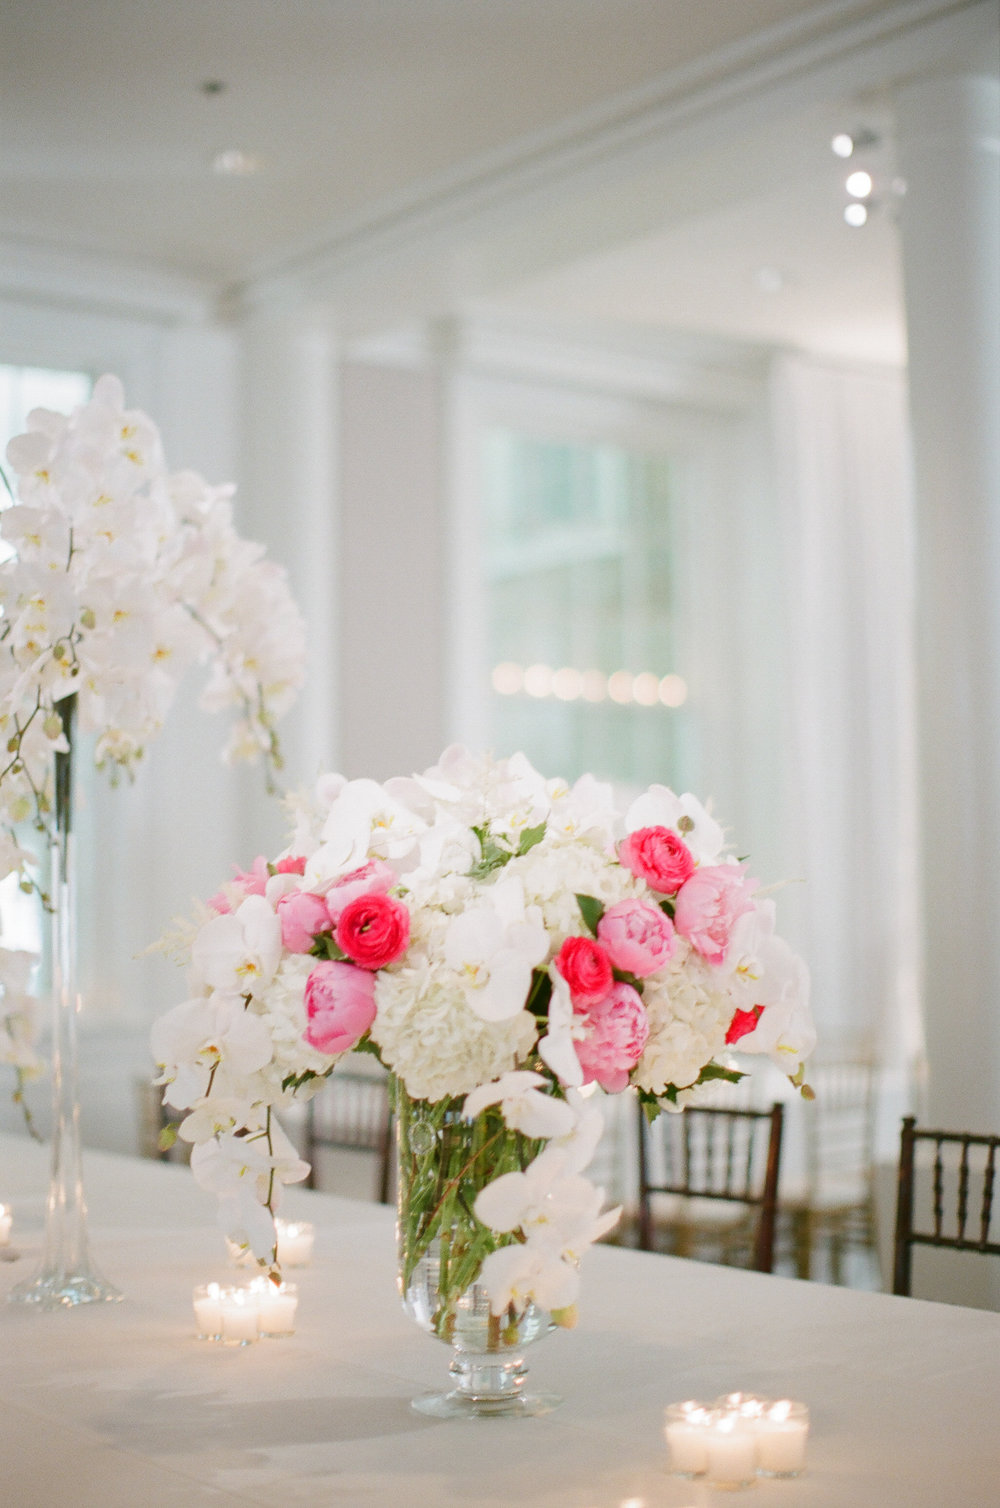 Pops of pink - Featured floral: orchids, hydrangea, ranculus, peonies